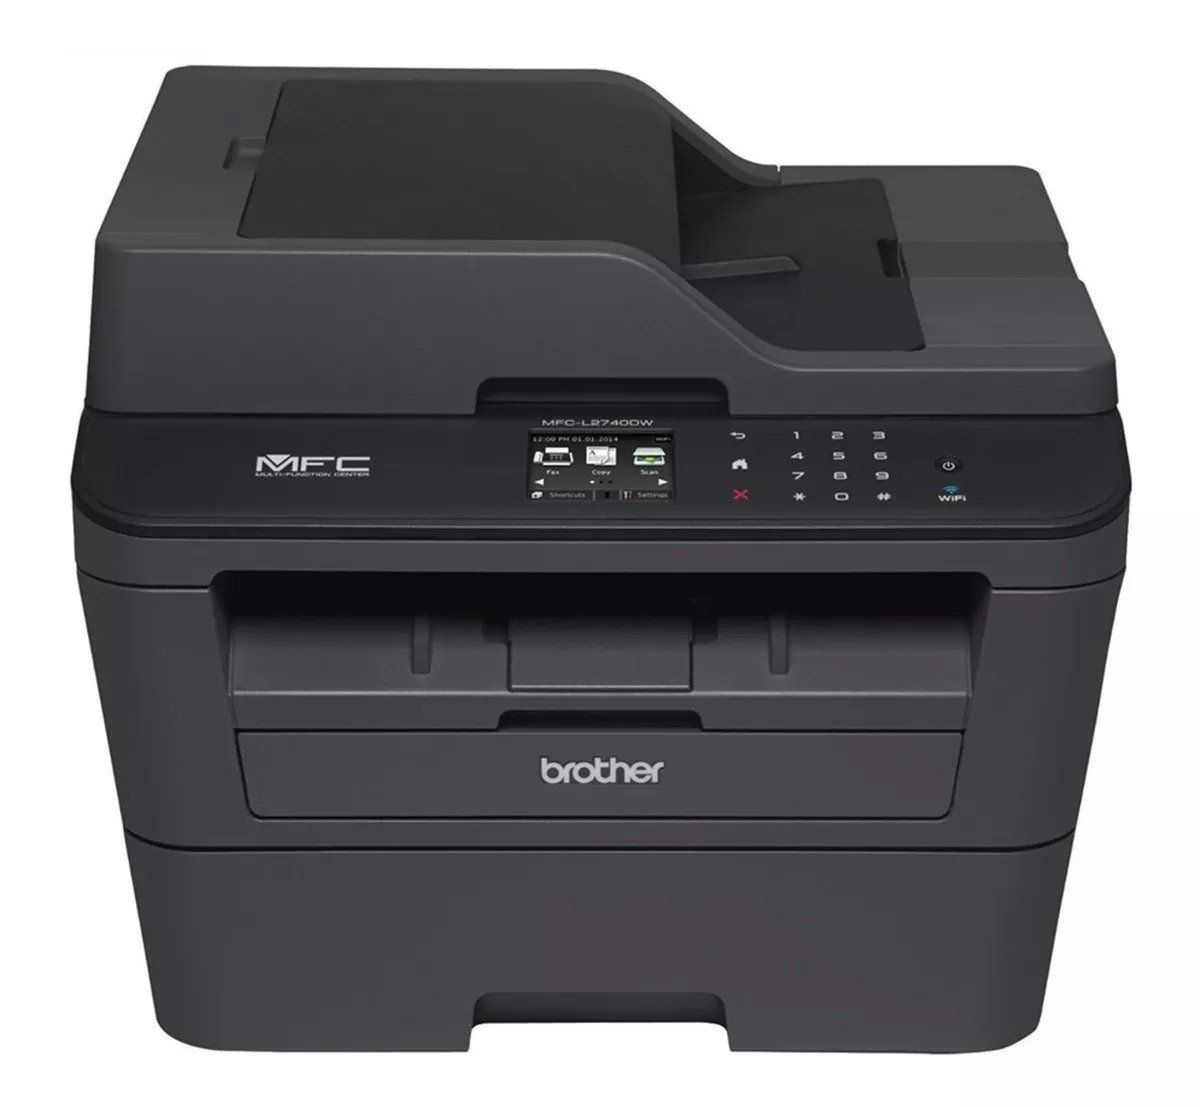 Impressora Multifuncional Brother Mfc-l2740dw L2740dw L2740